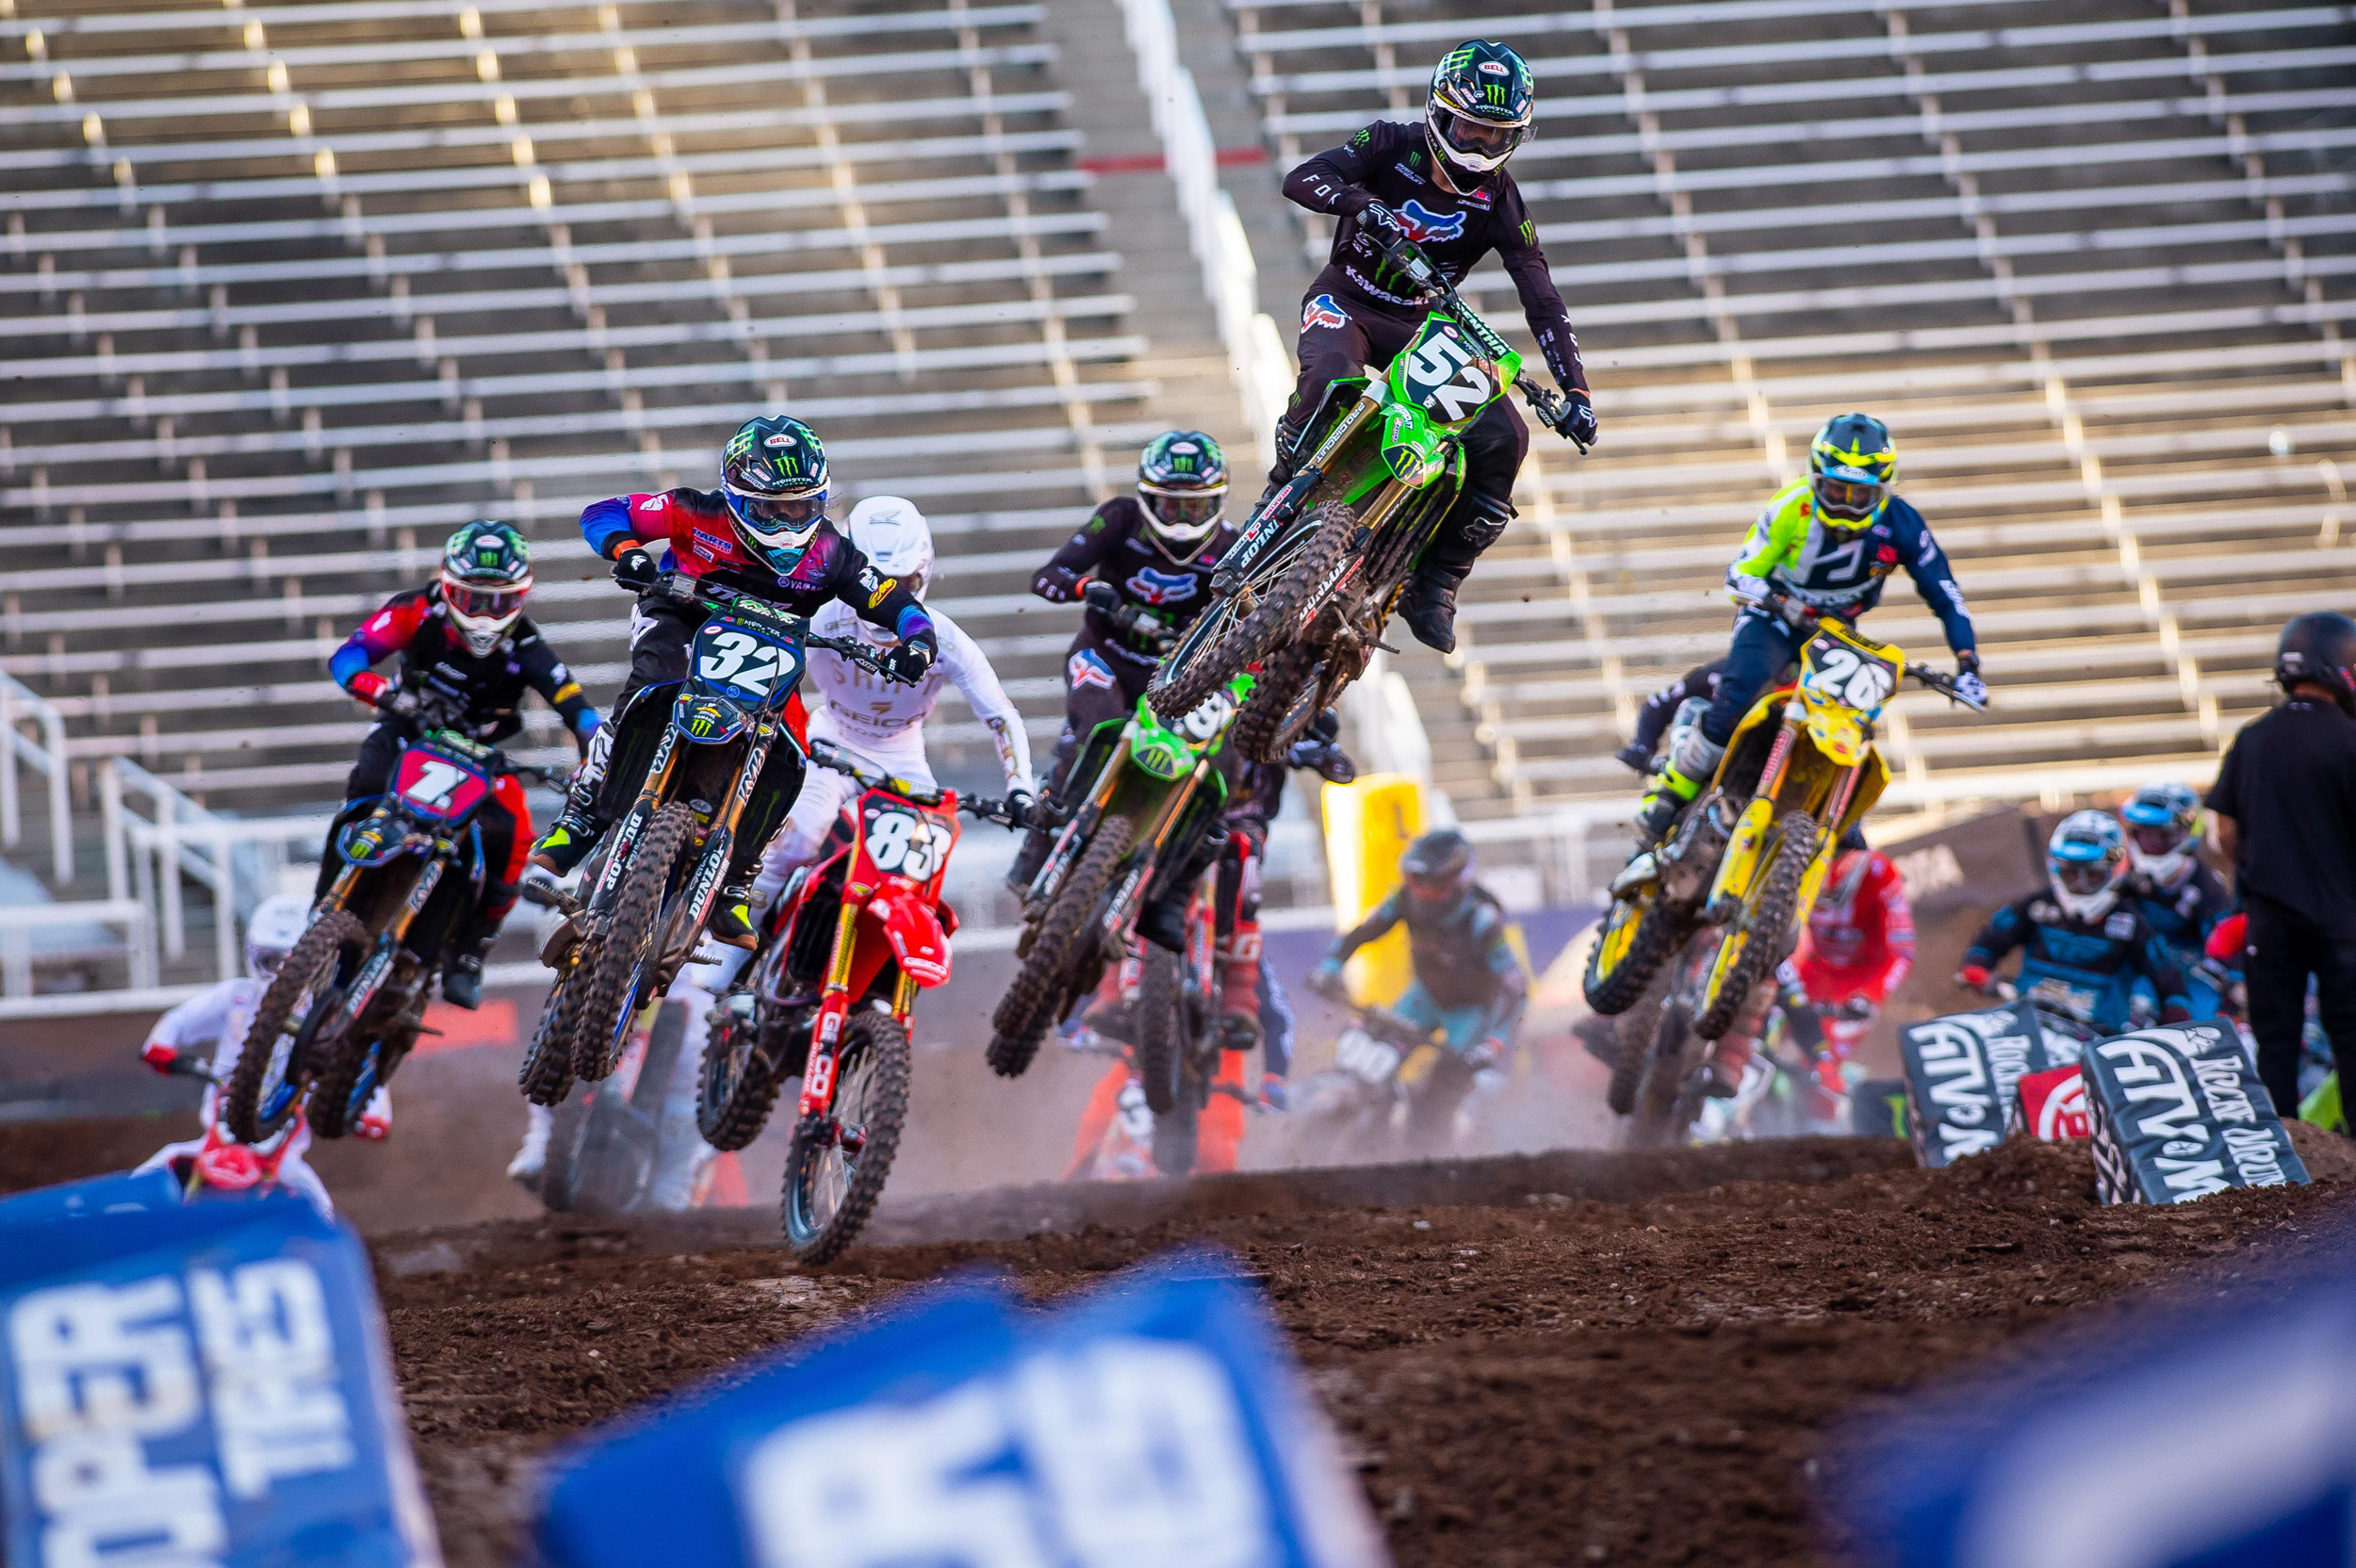 Austin Forkner rode clean laps to his third win of the season in the first 2020 appearance of the Western Regional 250SX Class in Utah. Photo Credit- Feld Entertainment,Inc